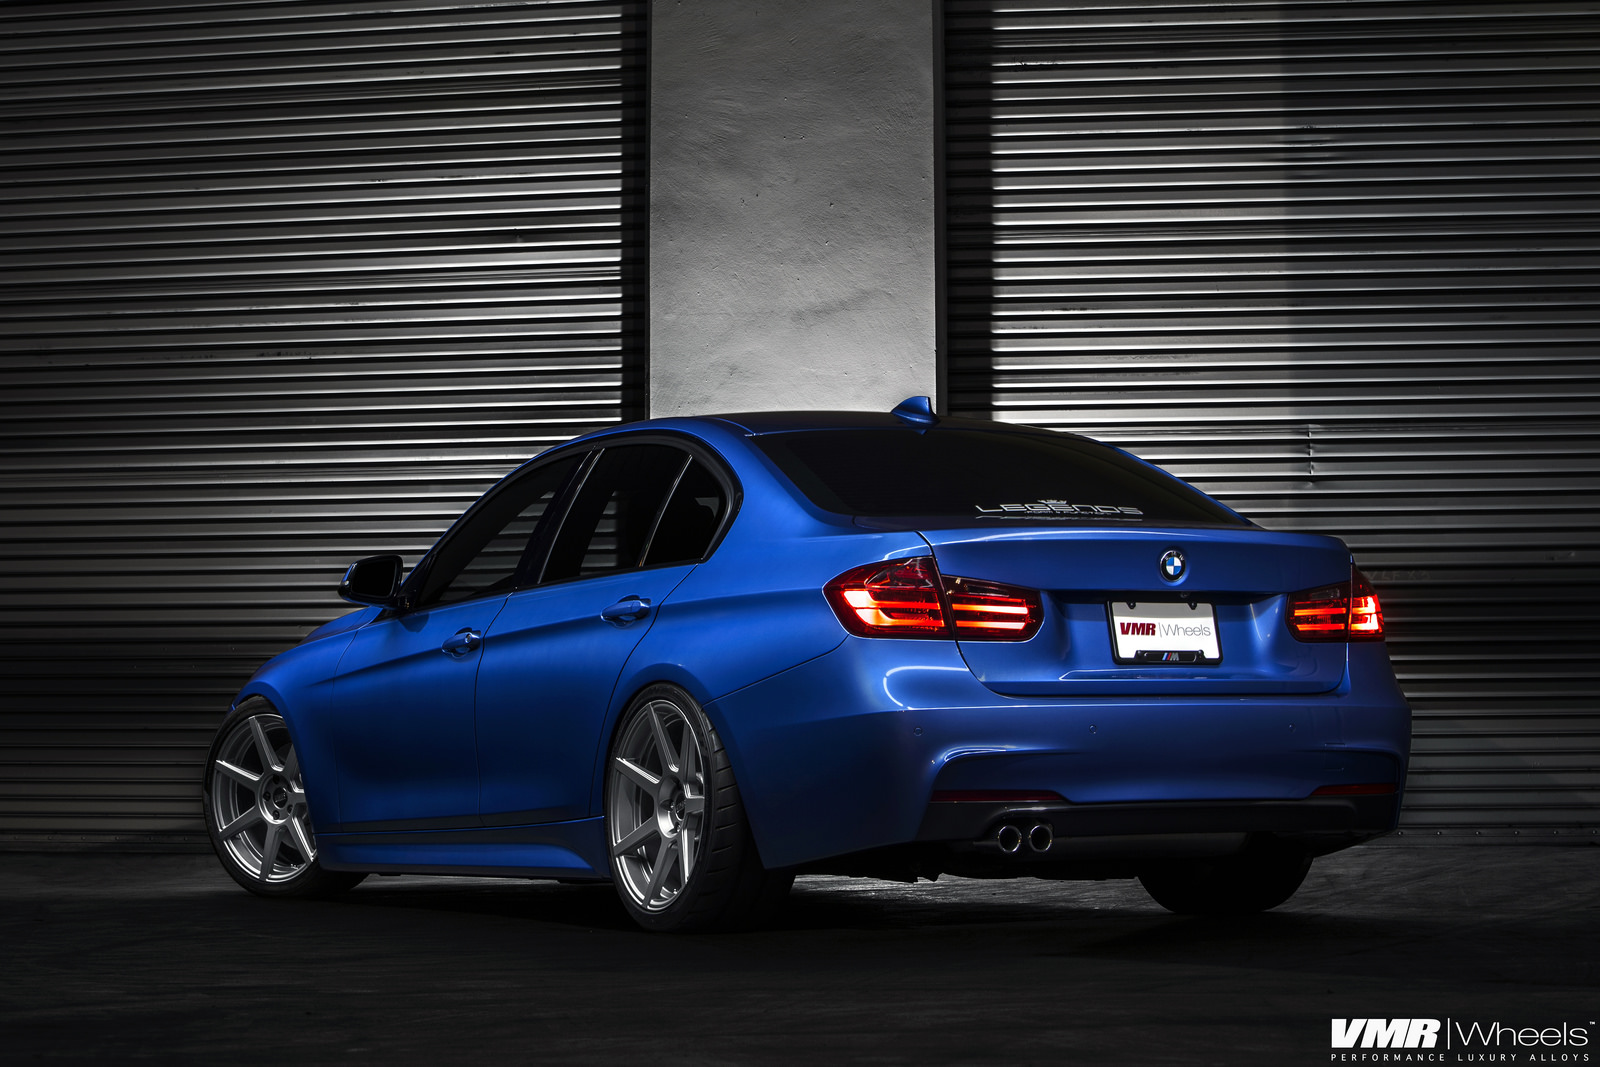 BMW F30 3 Series In Estoril Blue With The New V706 Wheels 6